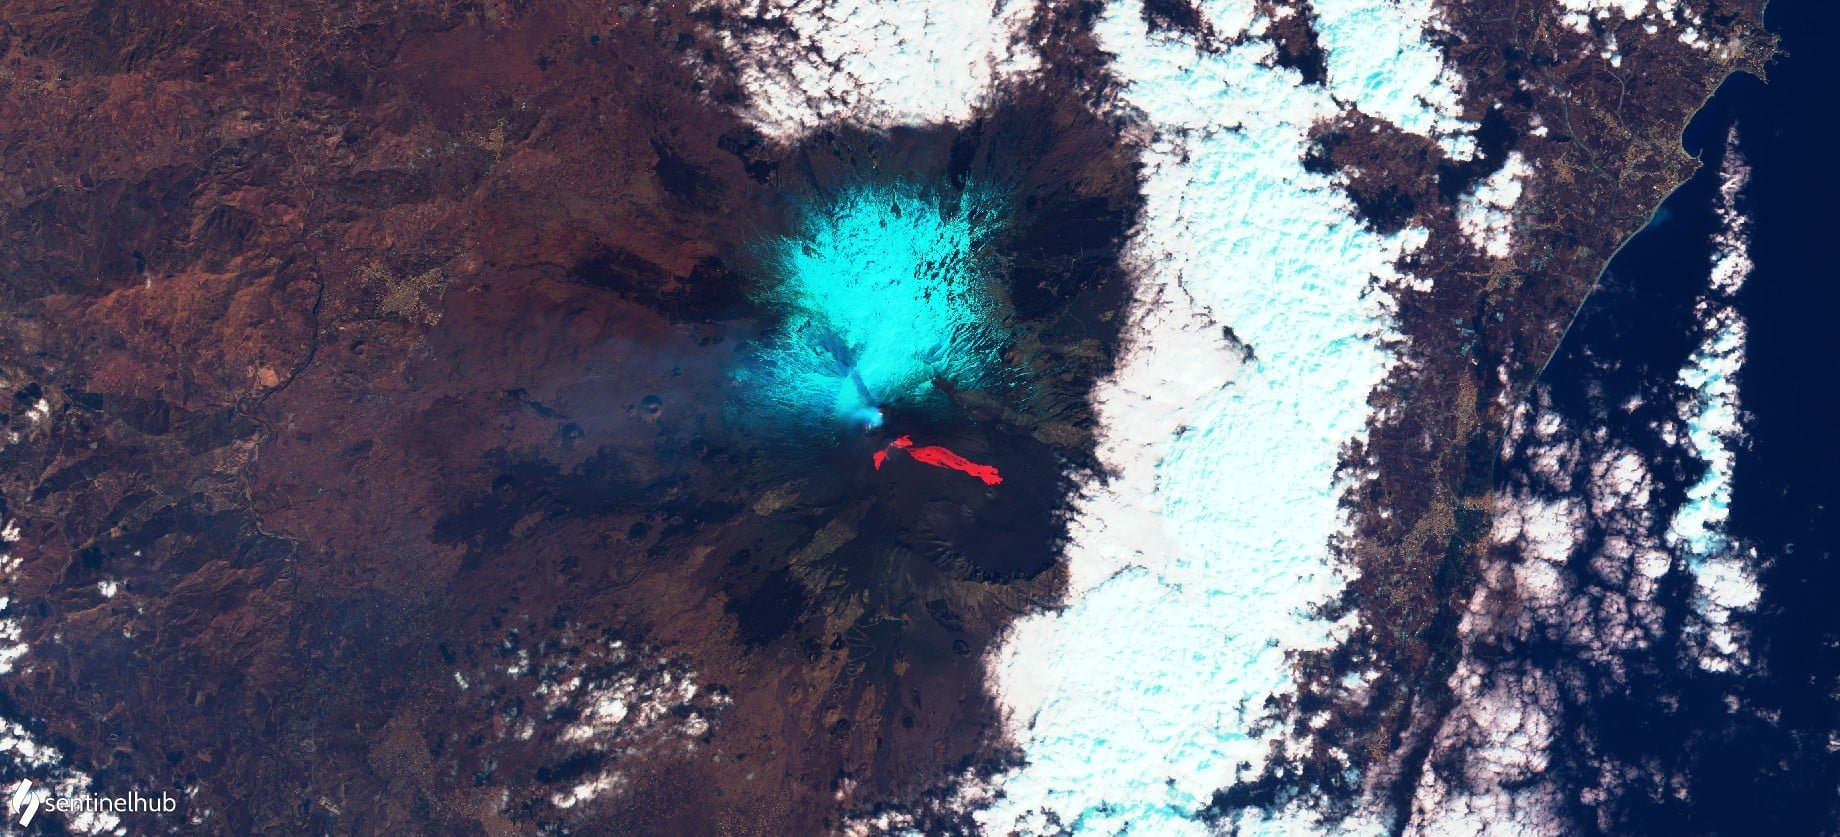 4th eruption, 20th feb 2021. View on eruption from Sentinel satellite